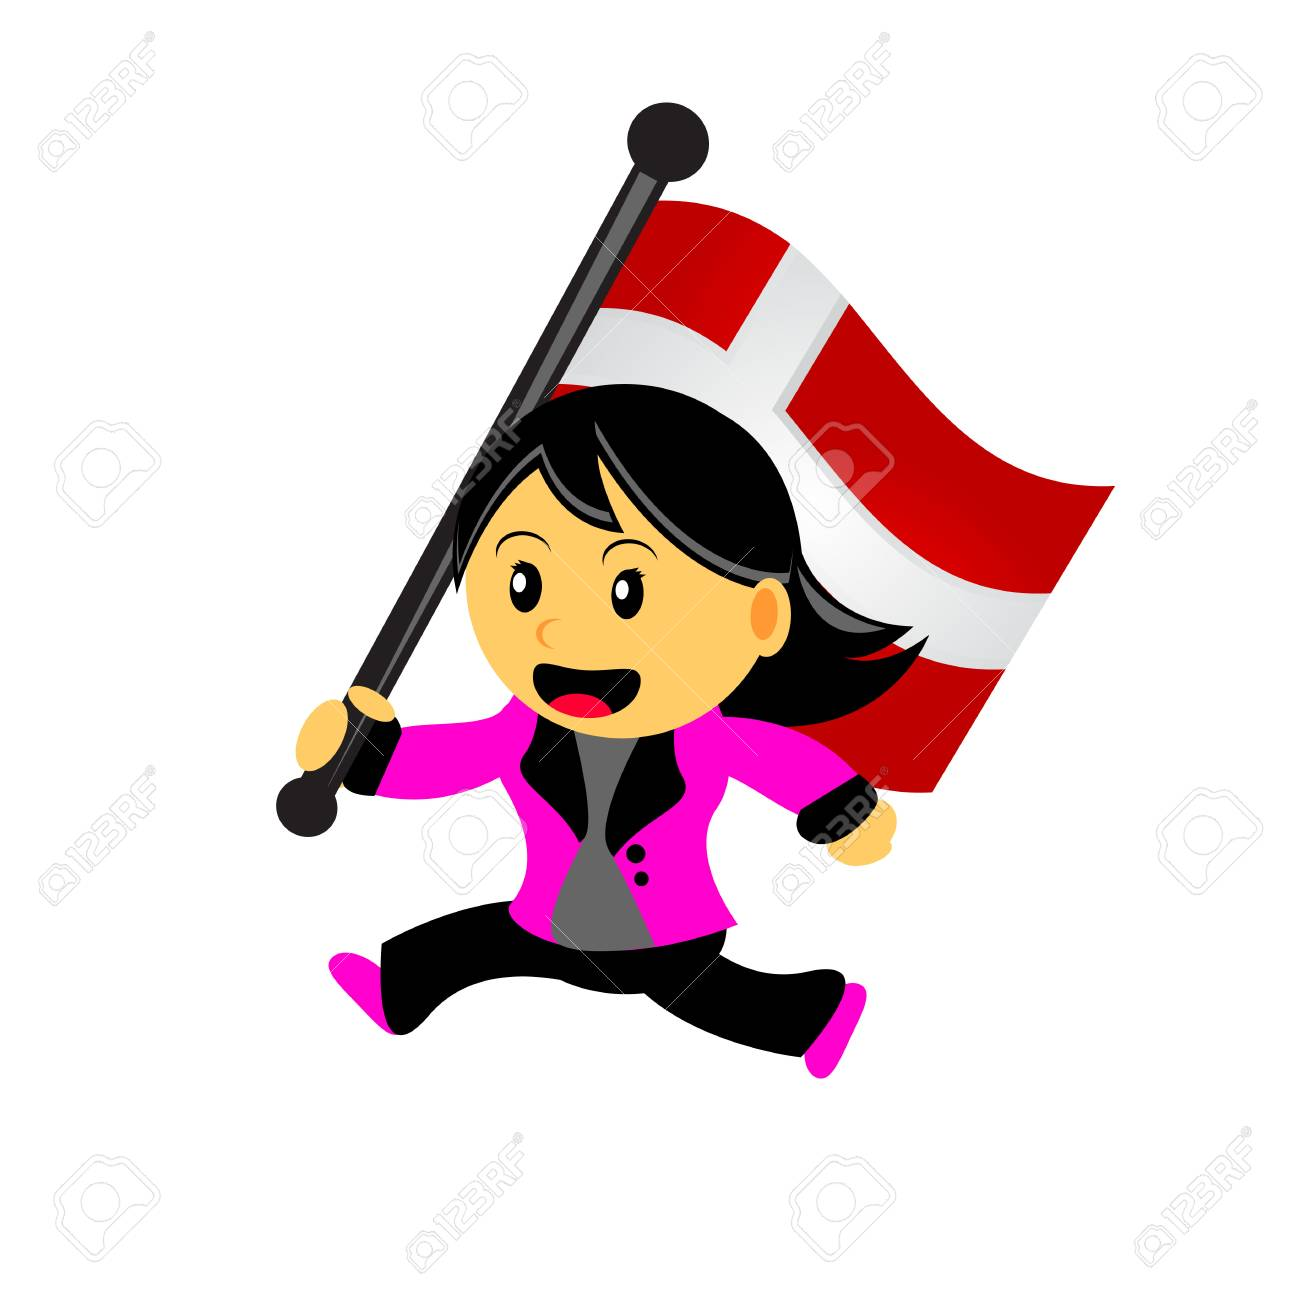 illustrasion vector graphic of cartoon woman / girl bring a country flag Stock Vector - 23238633